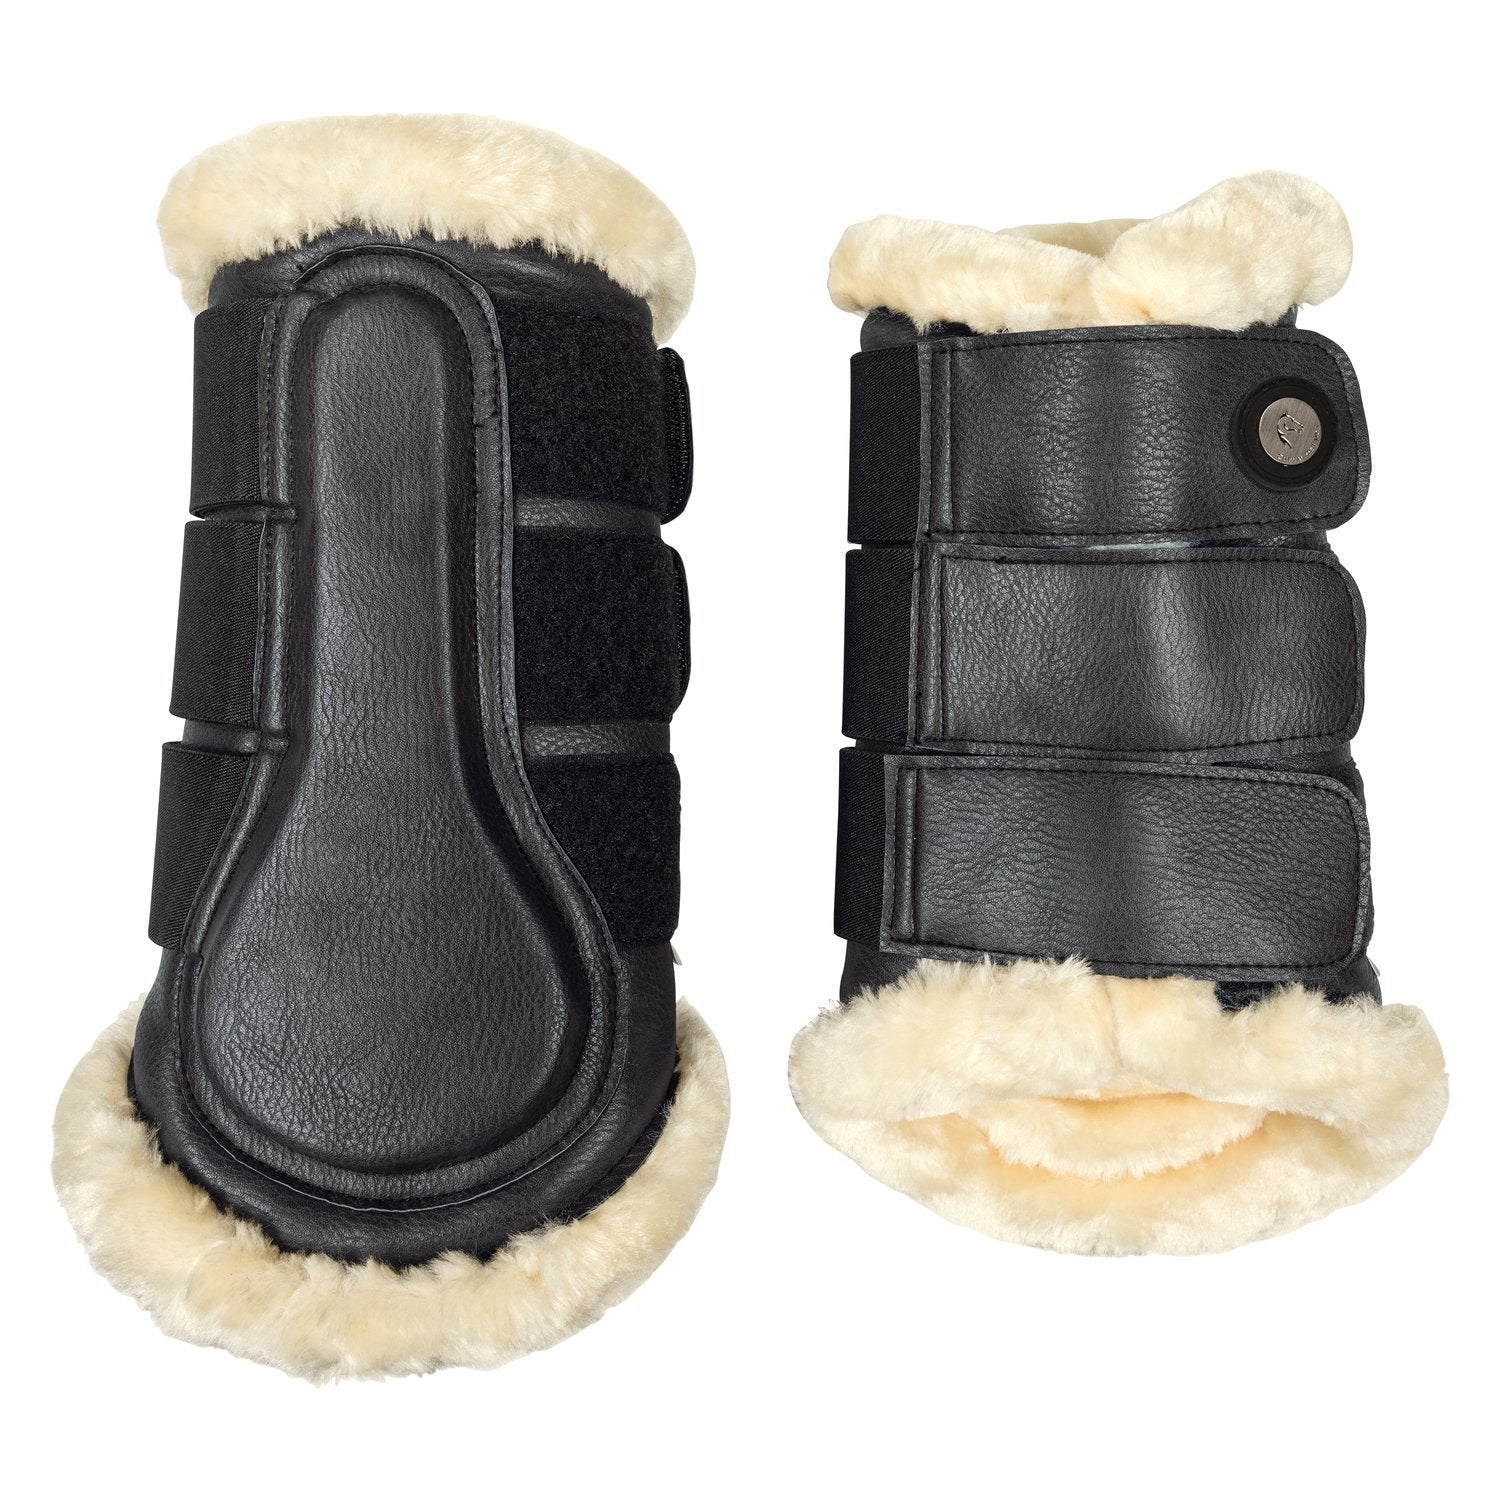 Cheval de Luxe Black Tendon Boots